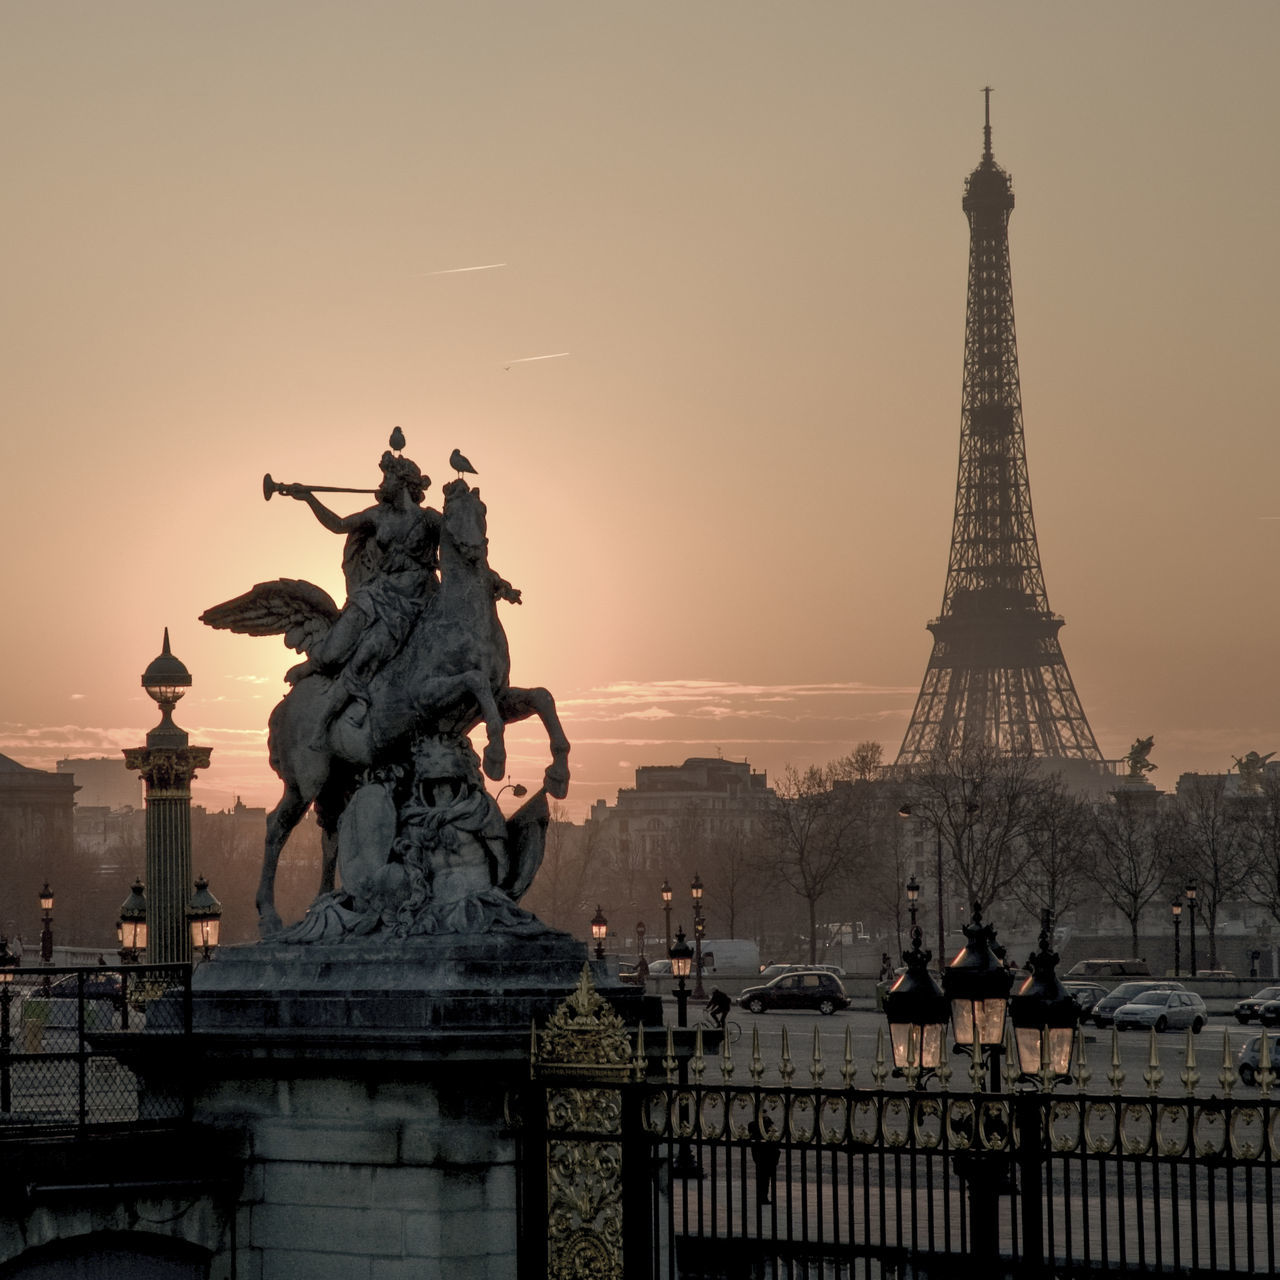 Paris, Eiffel Tower, sunset behind a statue, Tuileries garden. Eiffel Tower Famous Place International Landmark Light Monument Paris Sculpture Spirituality Statue Statue Sunset Tour Eiffel Travel Pastel Colors Travel Destinations Panorama Capital Cities